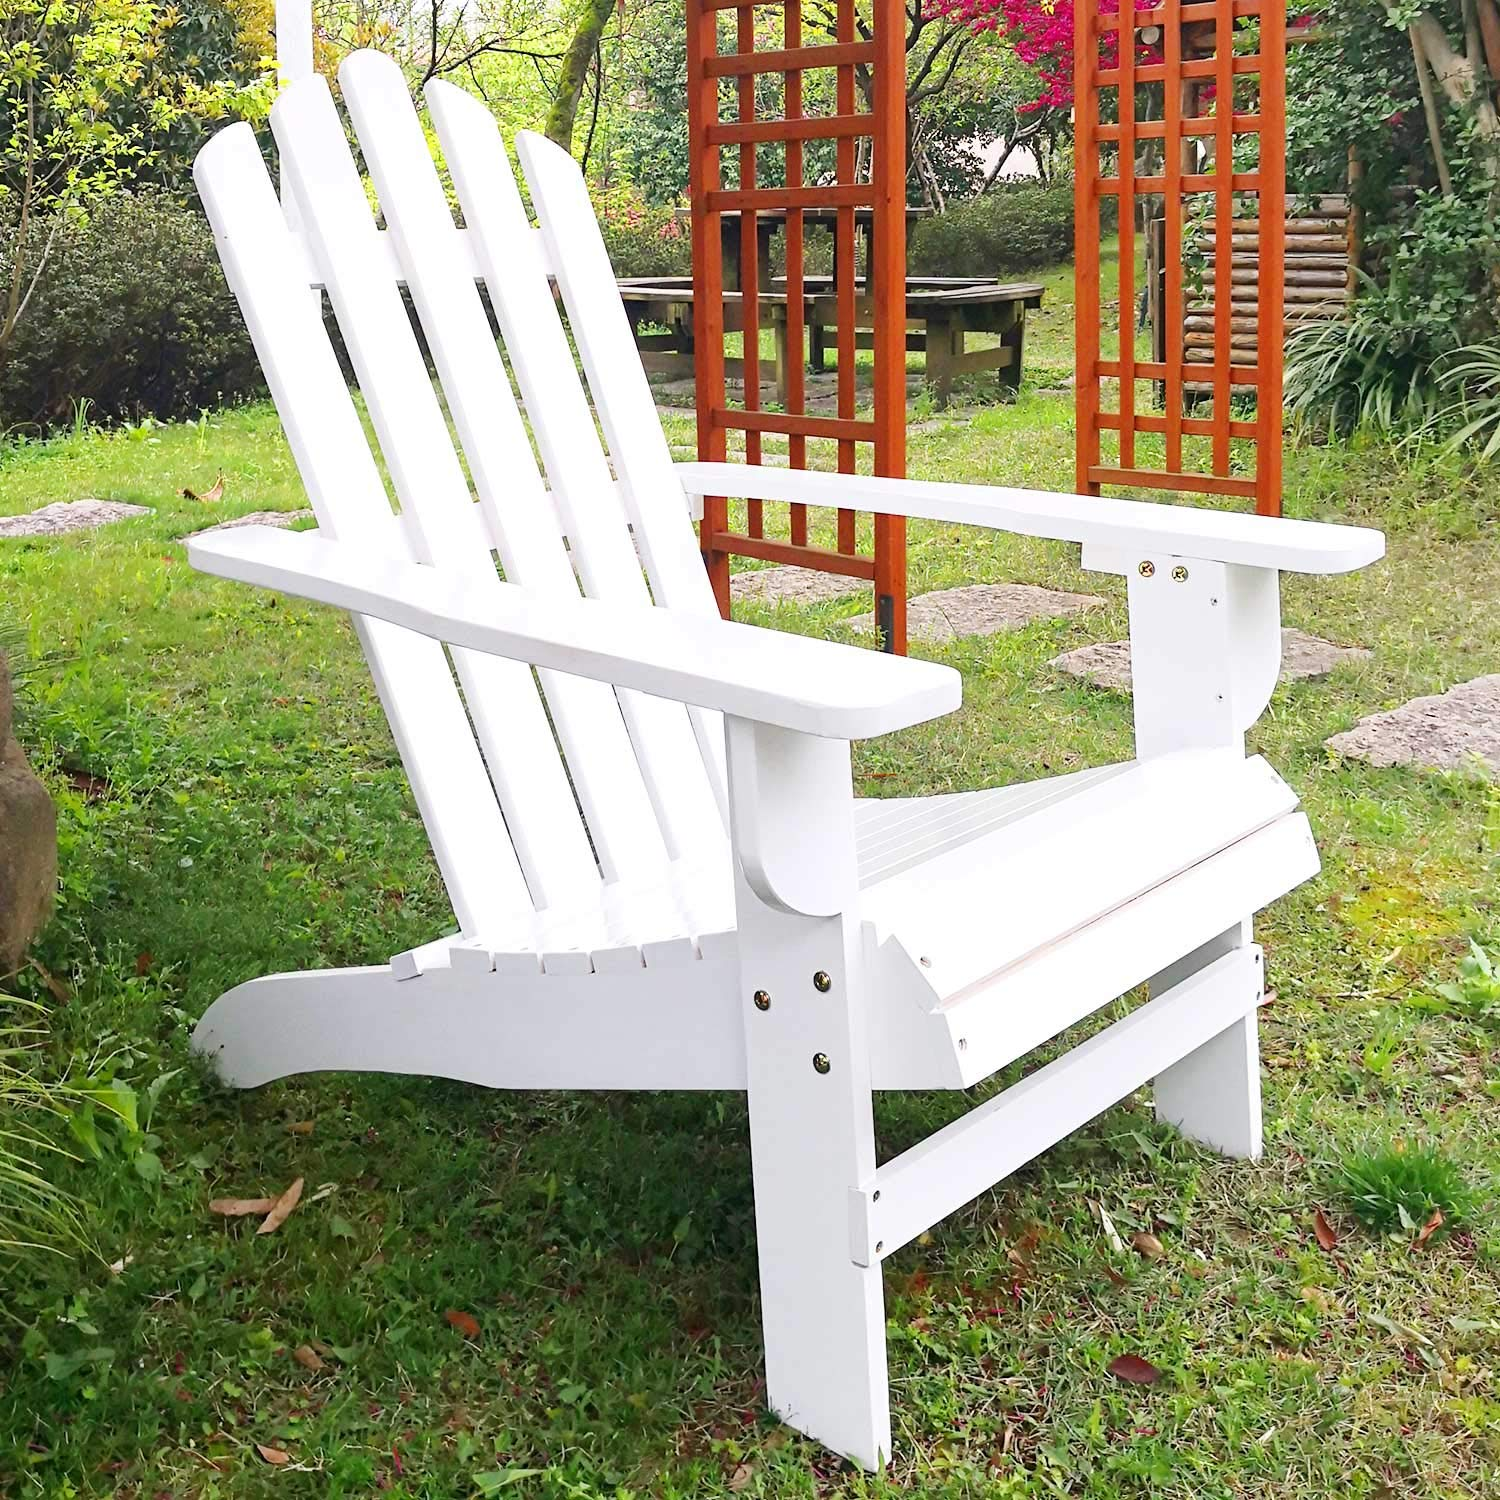 SFYLODS White Outdoor Painted Wood Fashion Adirondack Chair/Muskoka Chairs Patio Deck Garden Furniture by SFYLODS